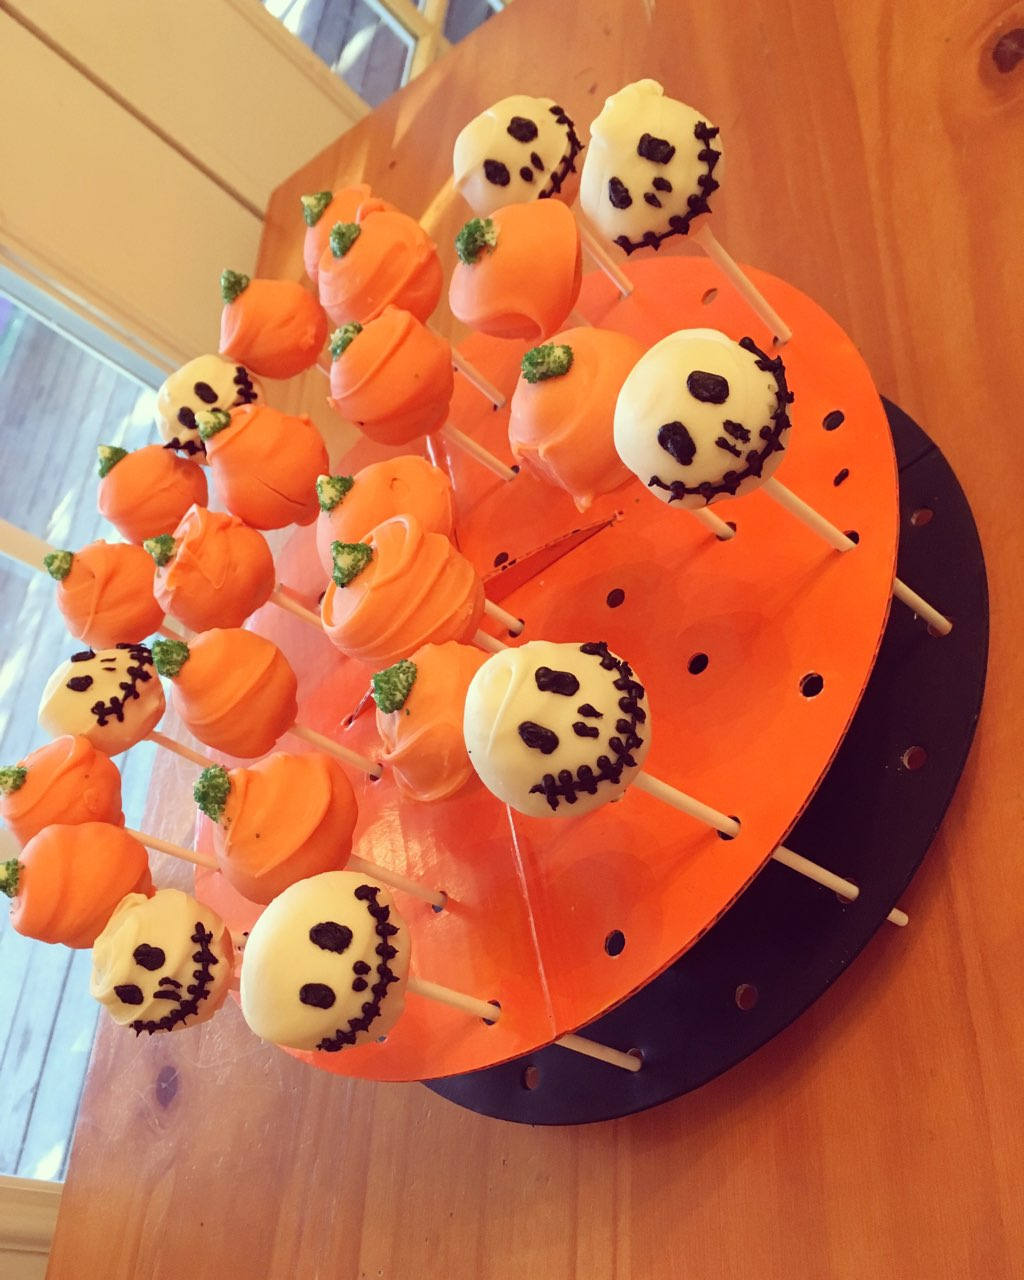 Happy halloween made homemade cake pops for my kids and for Halloween cake recipes from scratch